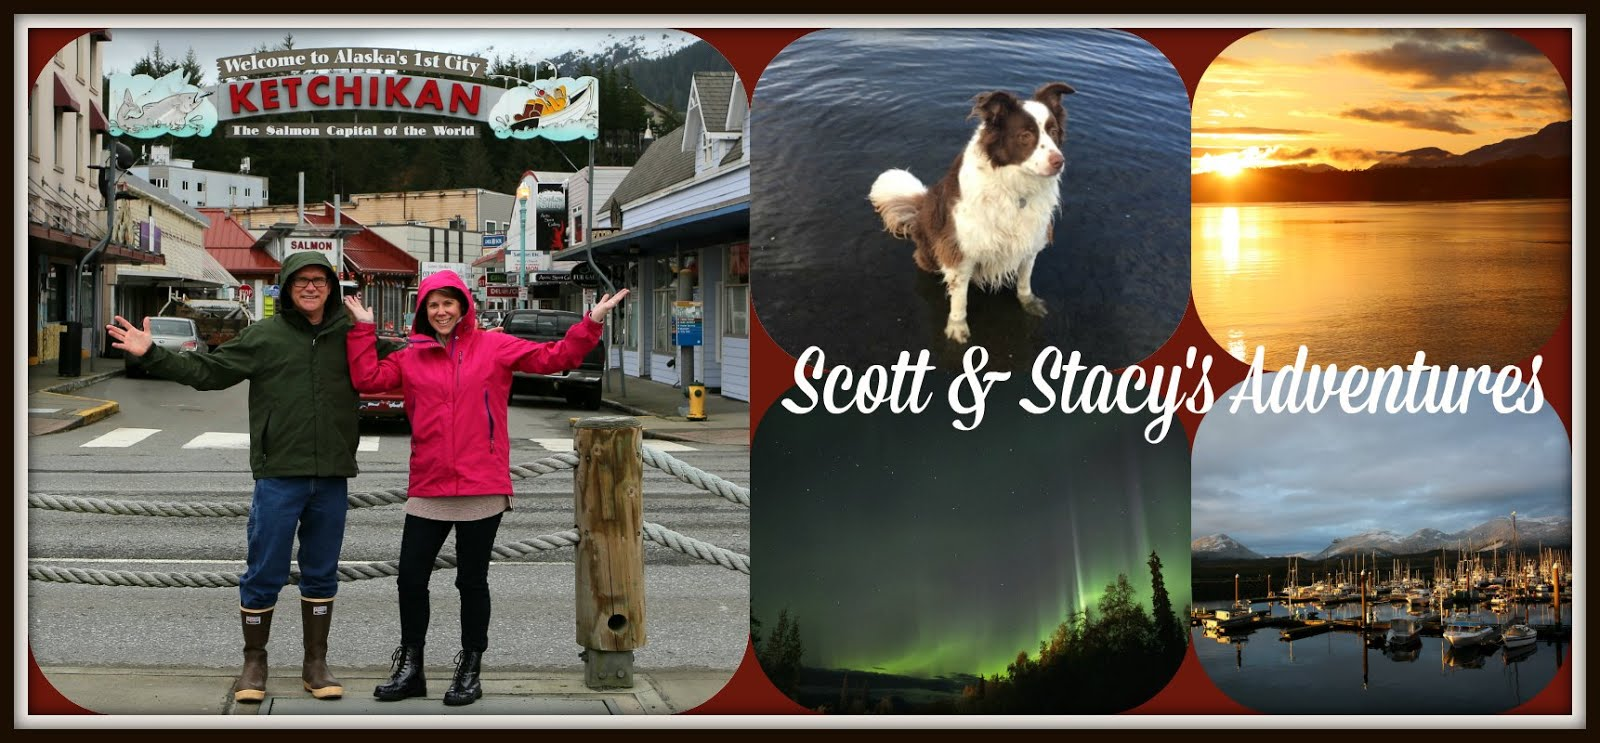 Scott & Stacy's Adventures